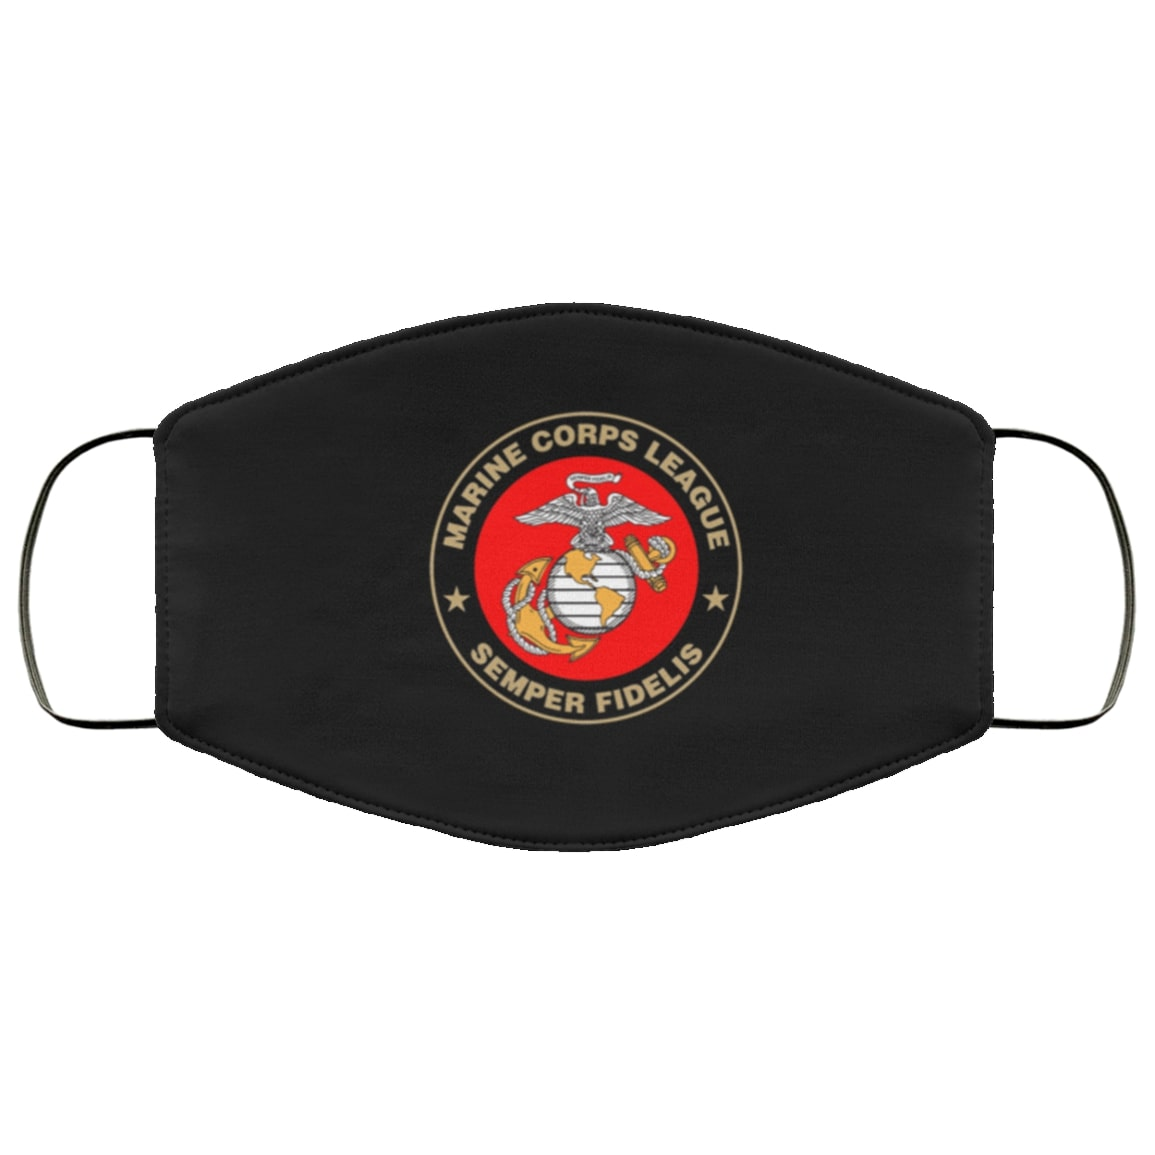 Marine corps league semper fidelis all over printed face mask 3